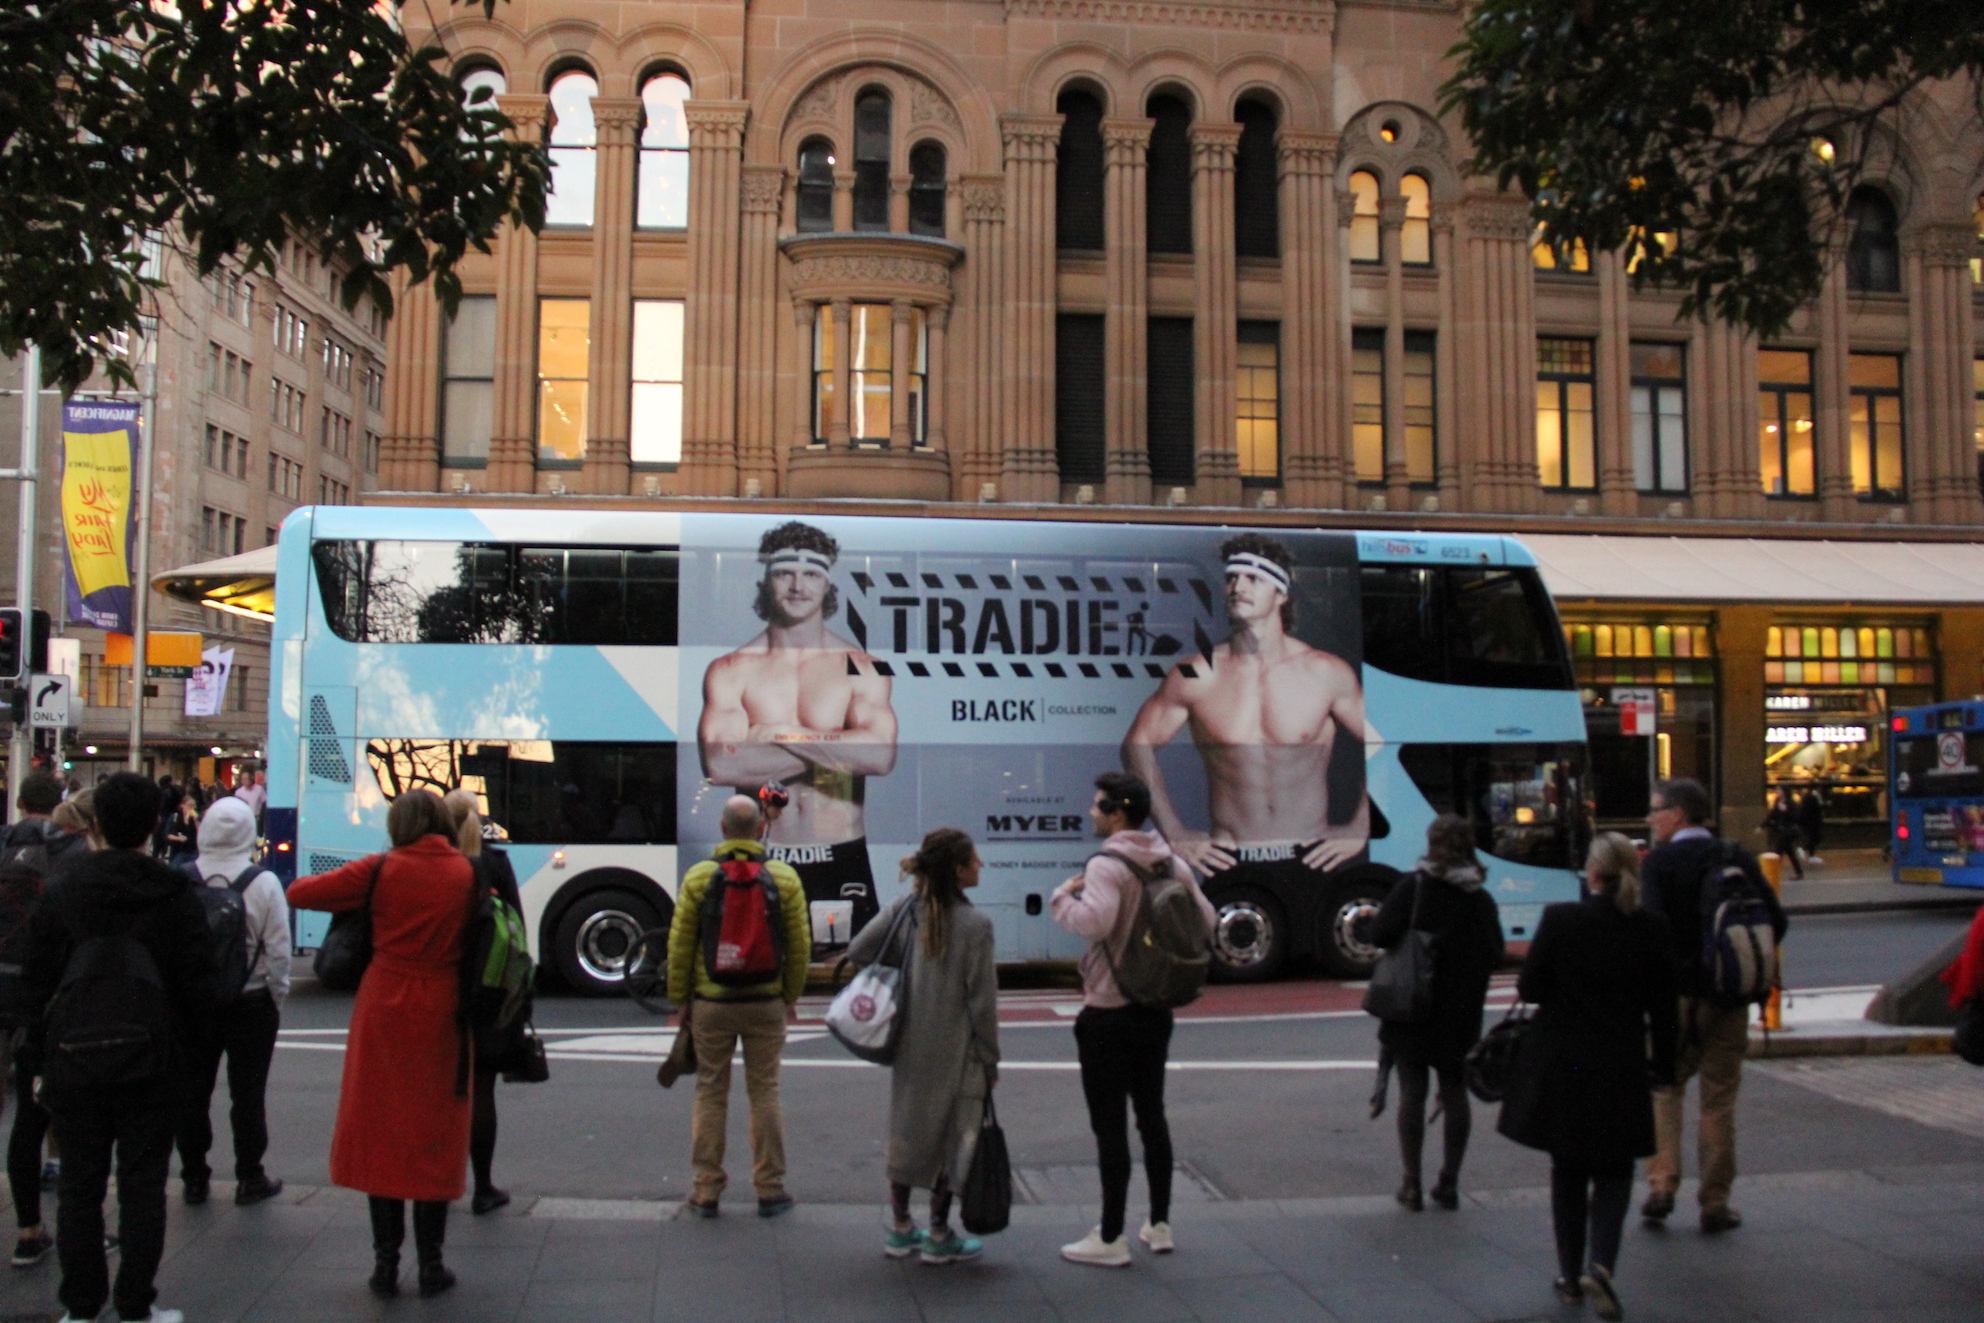 Moving billboard advertising Tradie underwear out of home media